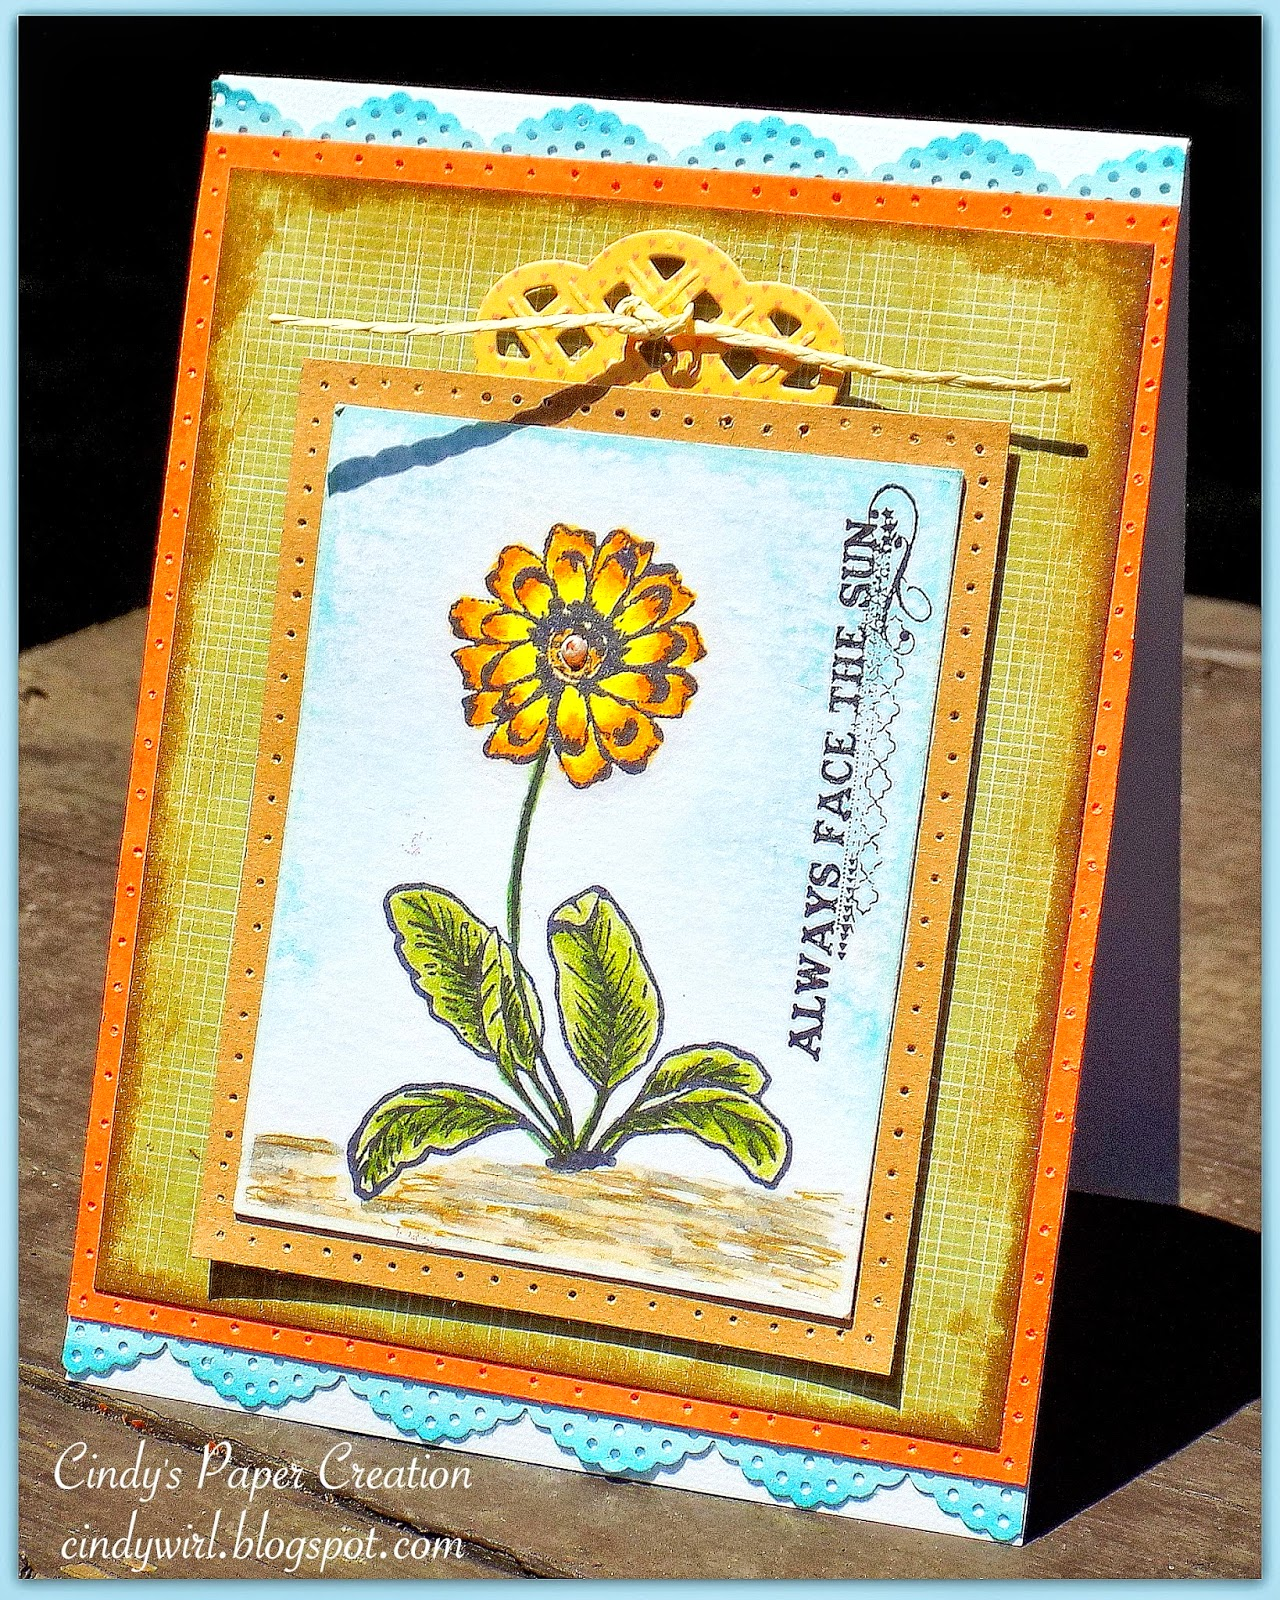 Handmade card Always Face The Sun by cindywirl.blogspot.com